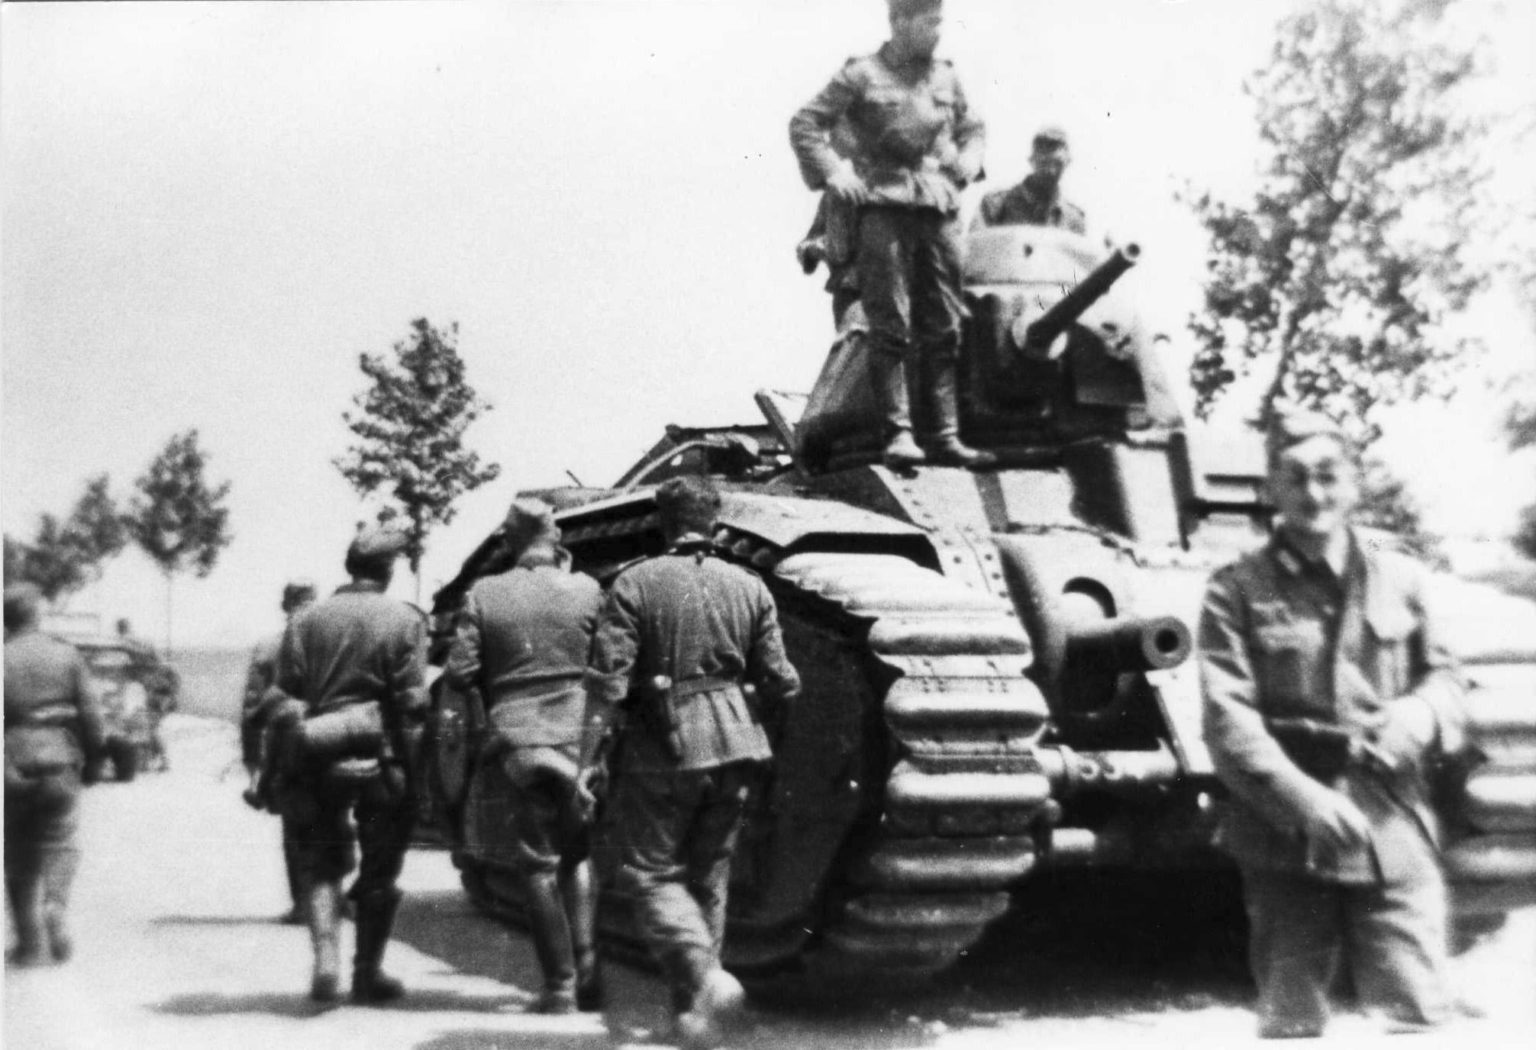 German troops with a Char B tank used by the Nazi forces during the occupation of Jersey in the Second World War.